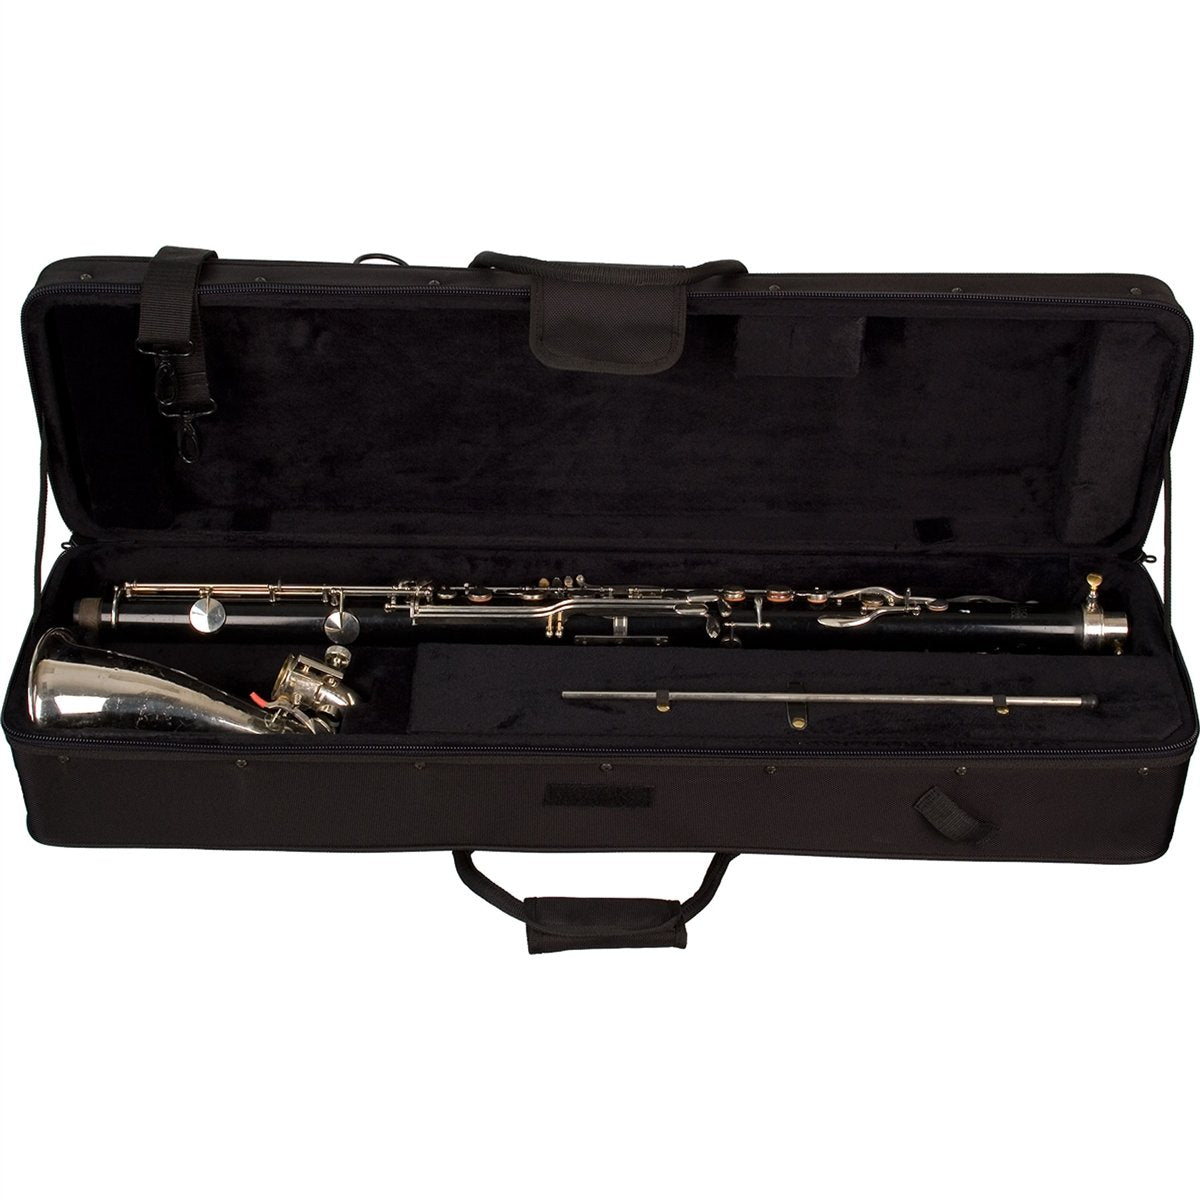 Protec - Bass Clarinet (Low Eb) PRO PAC Case-Accessories-Protec-Music Elements